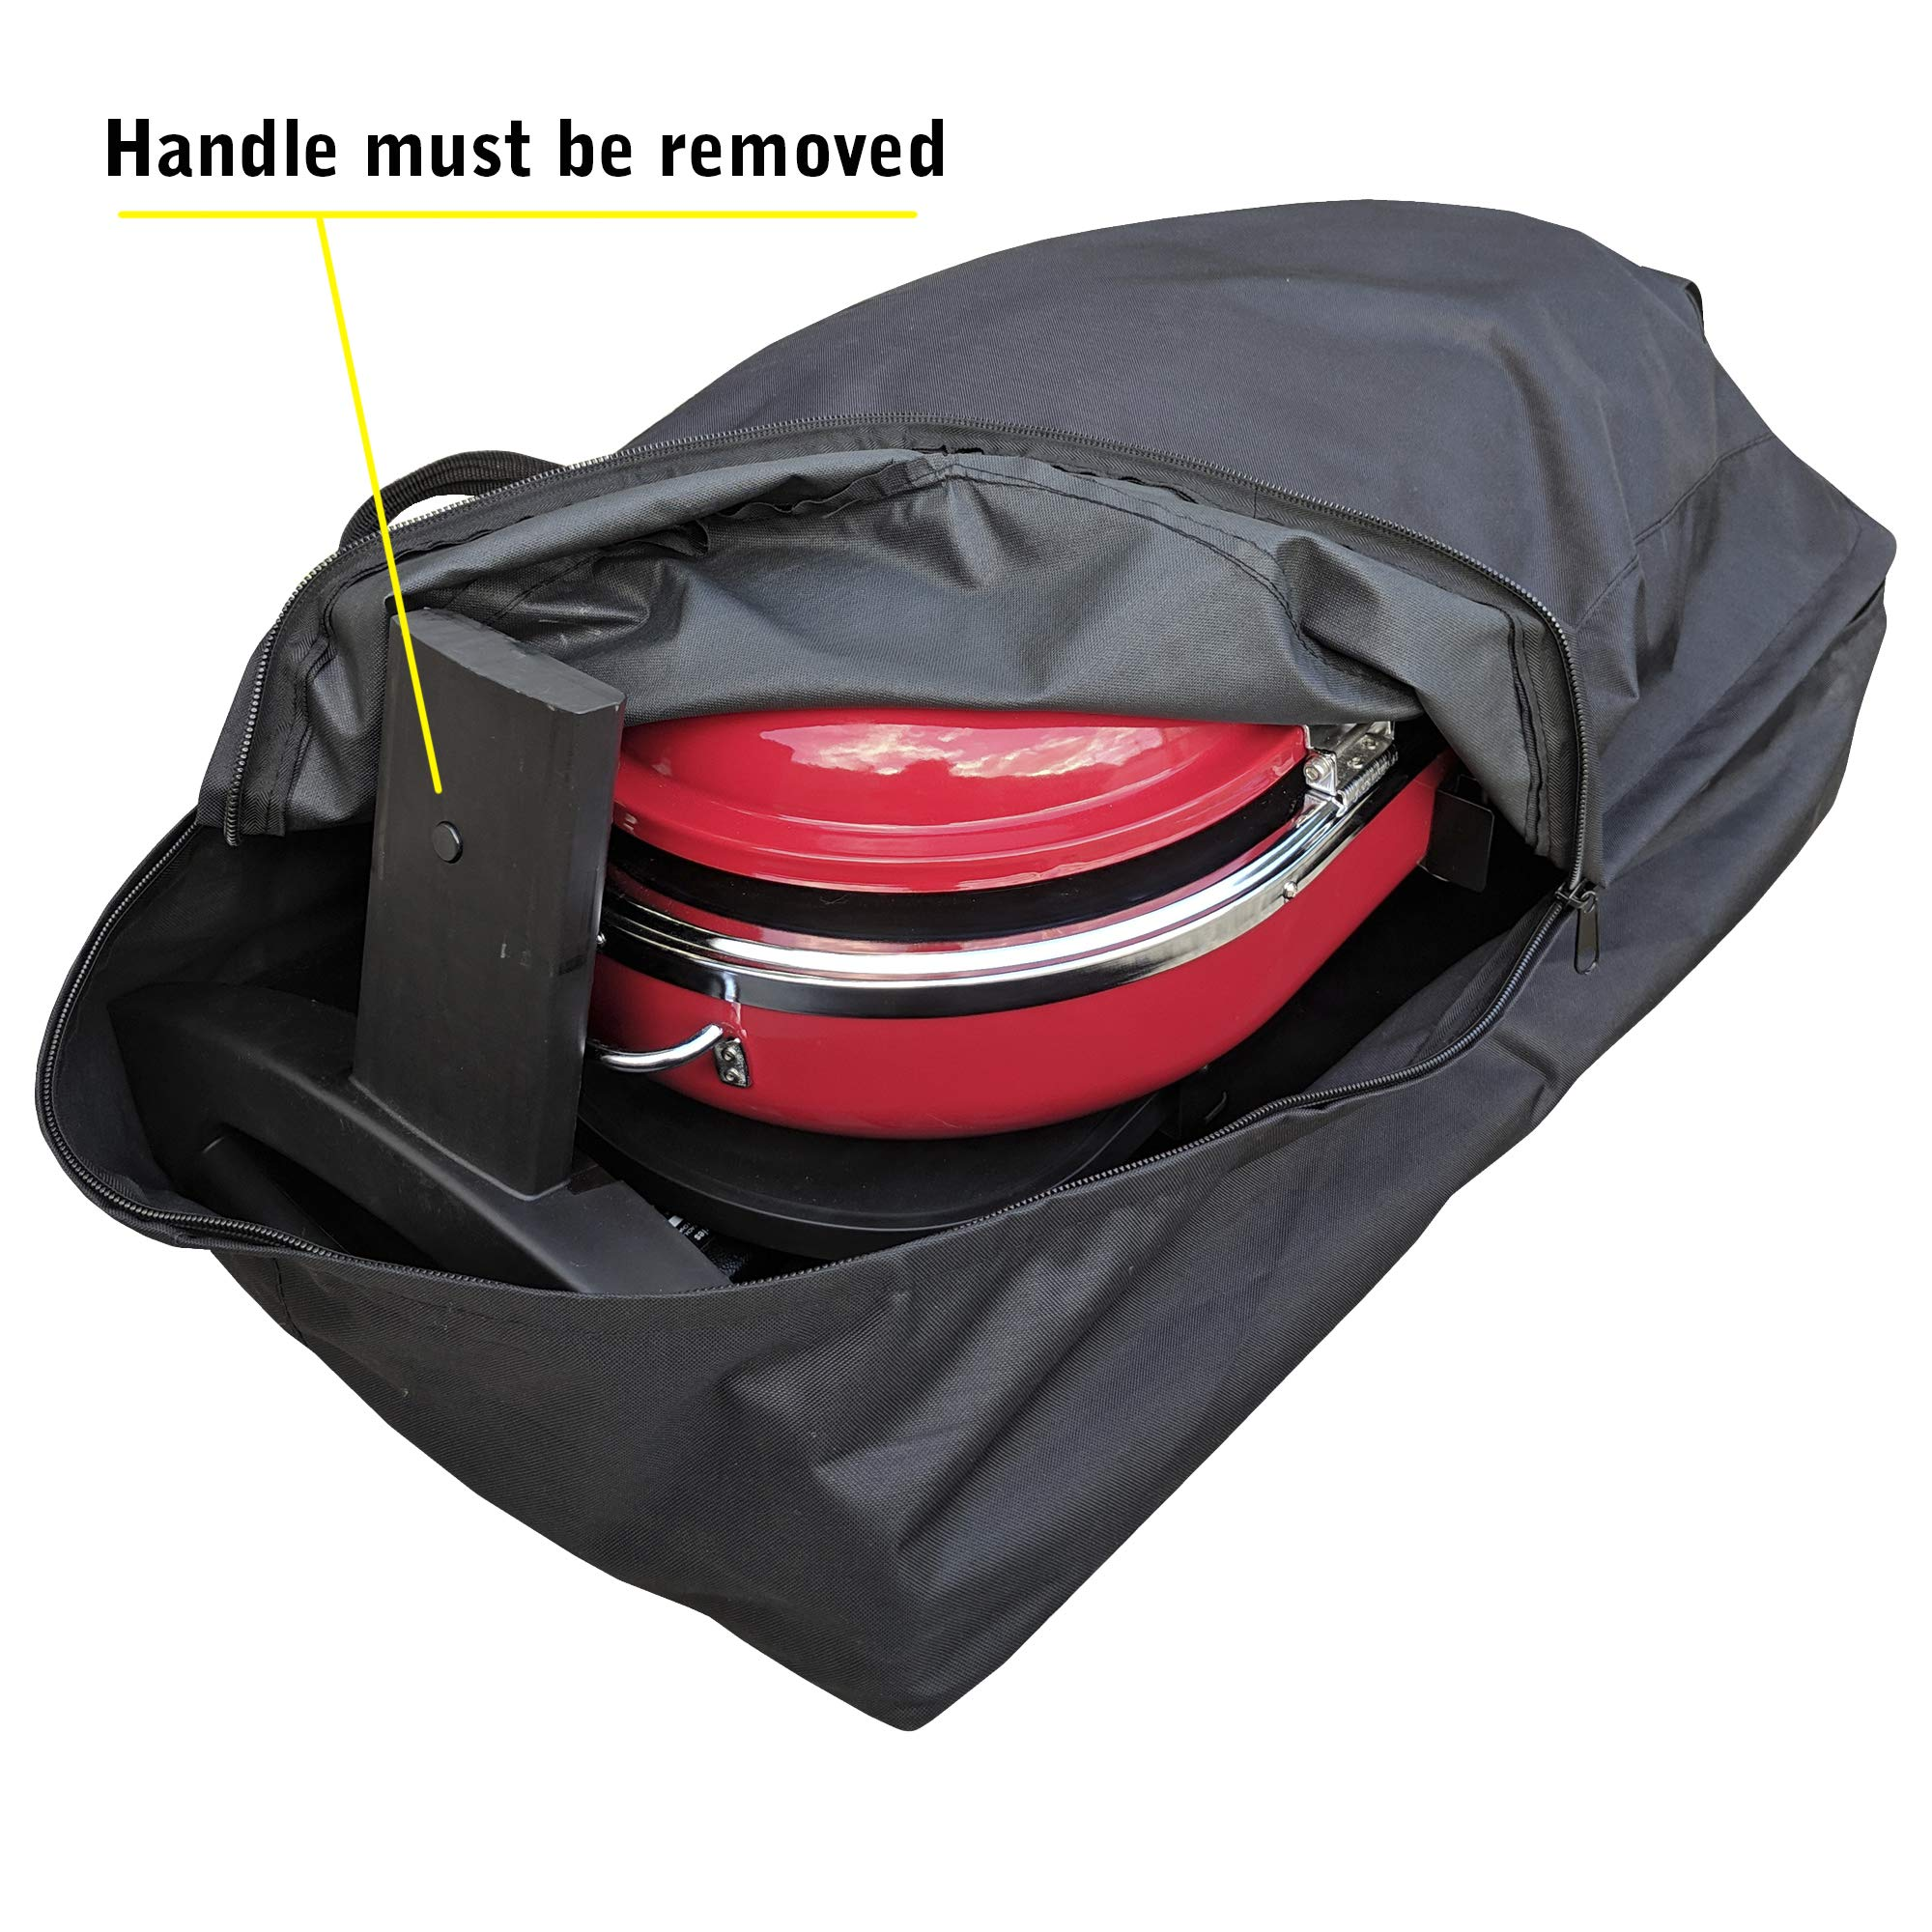 Grill Cover/Bag for Coleman Roadtrip LXE and LXX - Heavy Duty, All Weather Storage Case by Redwood Grill Supply